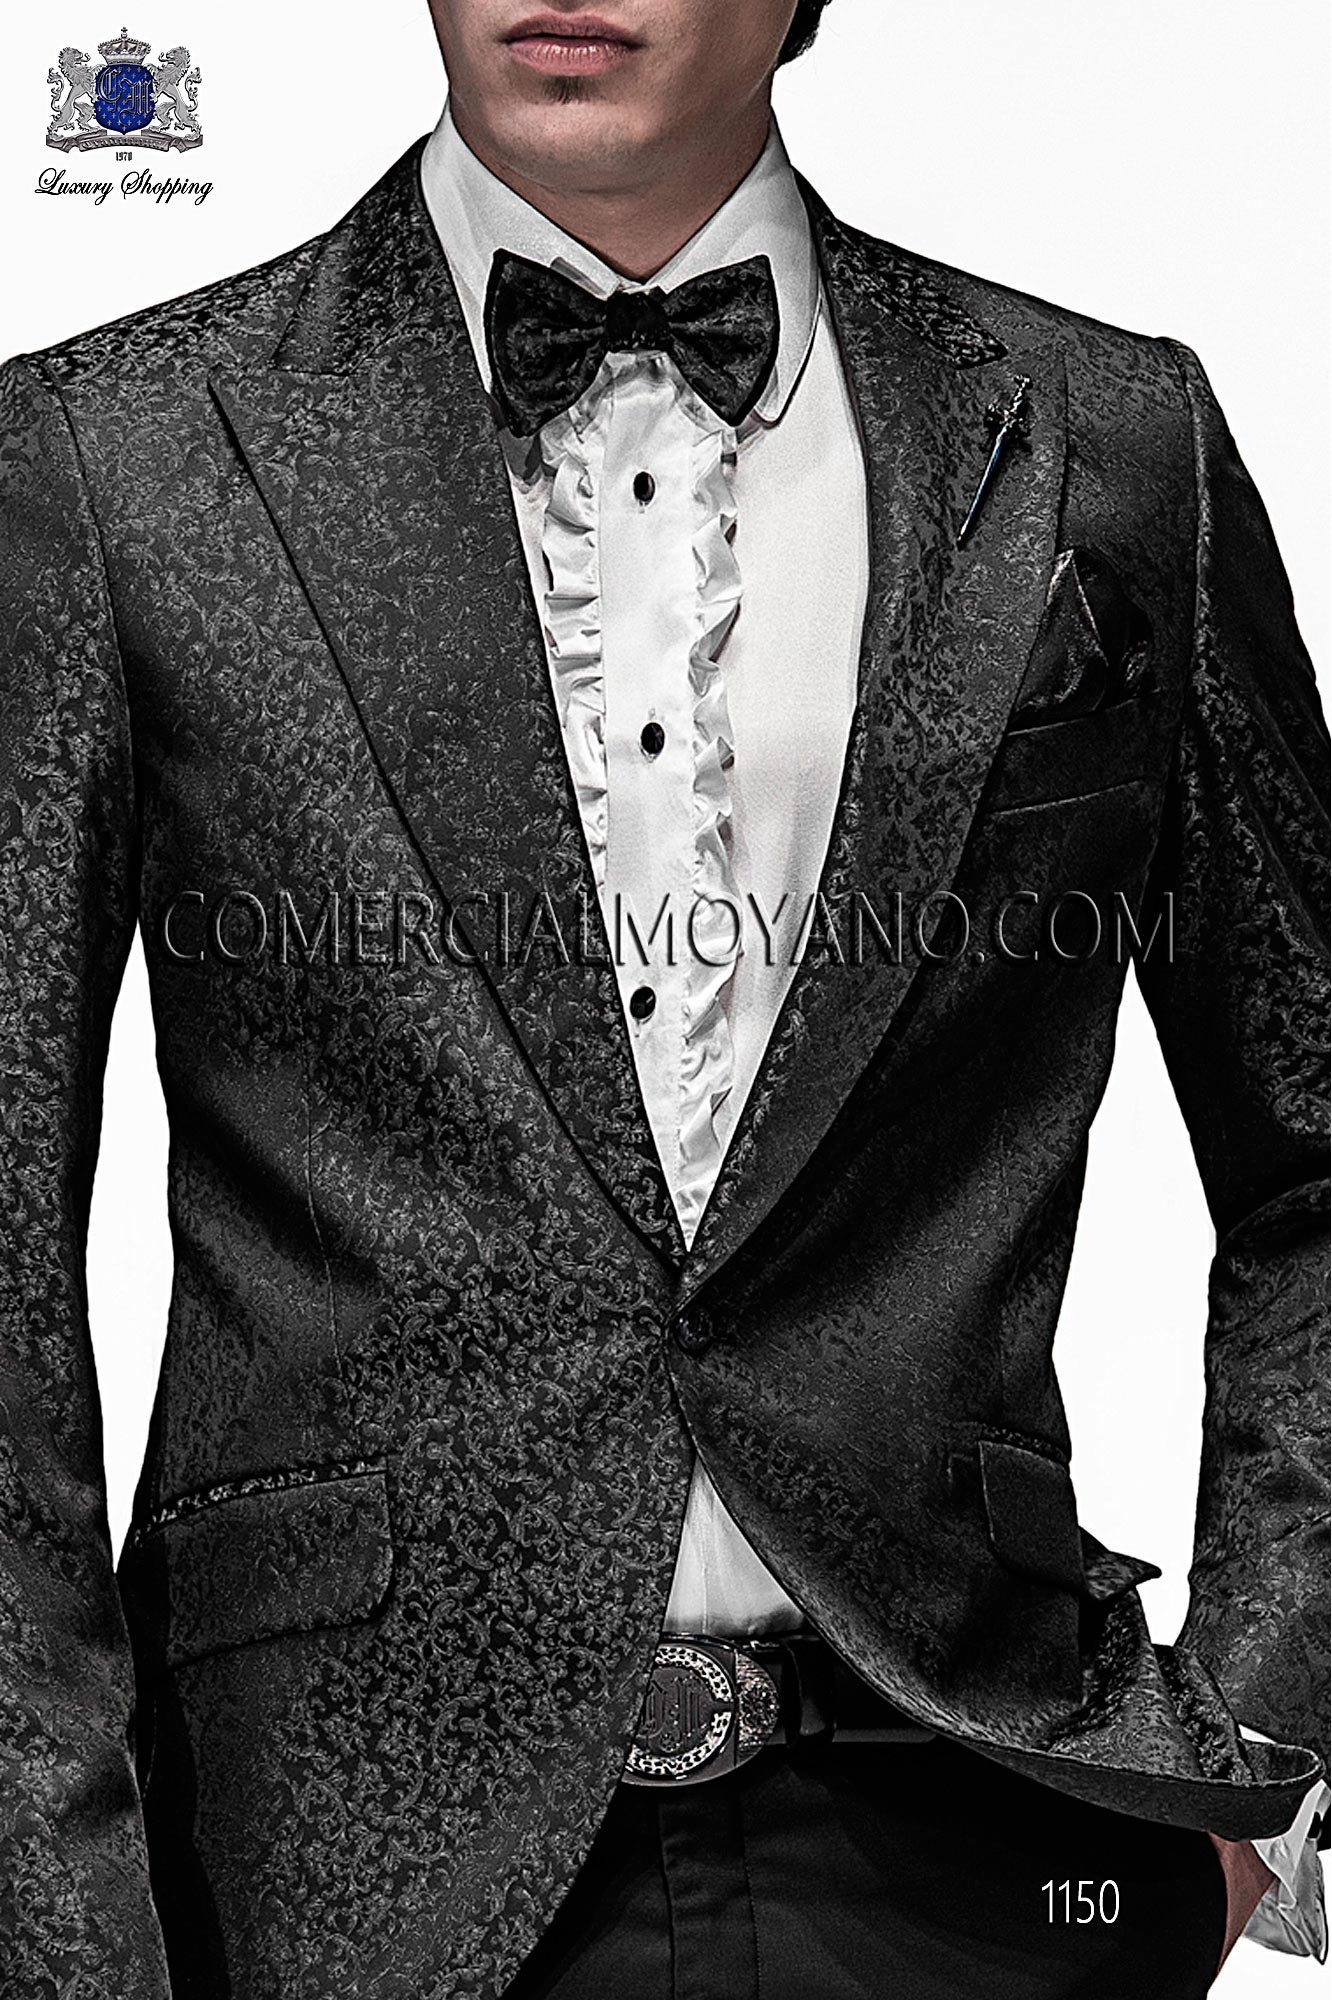 Italian emotion black/gray men wedding suit, model: 1150 Ottavio Nuccio Gala Emotion Collection